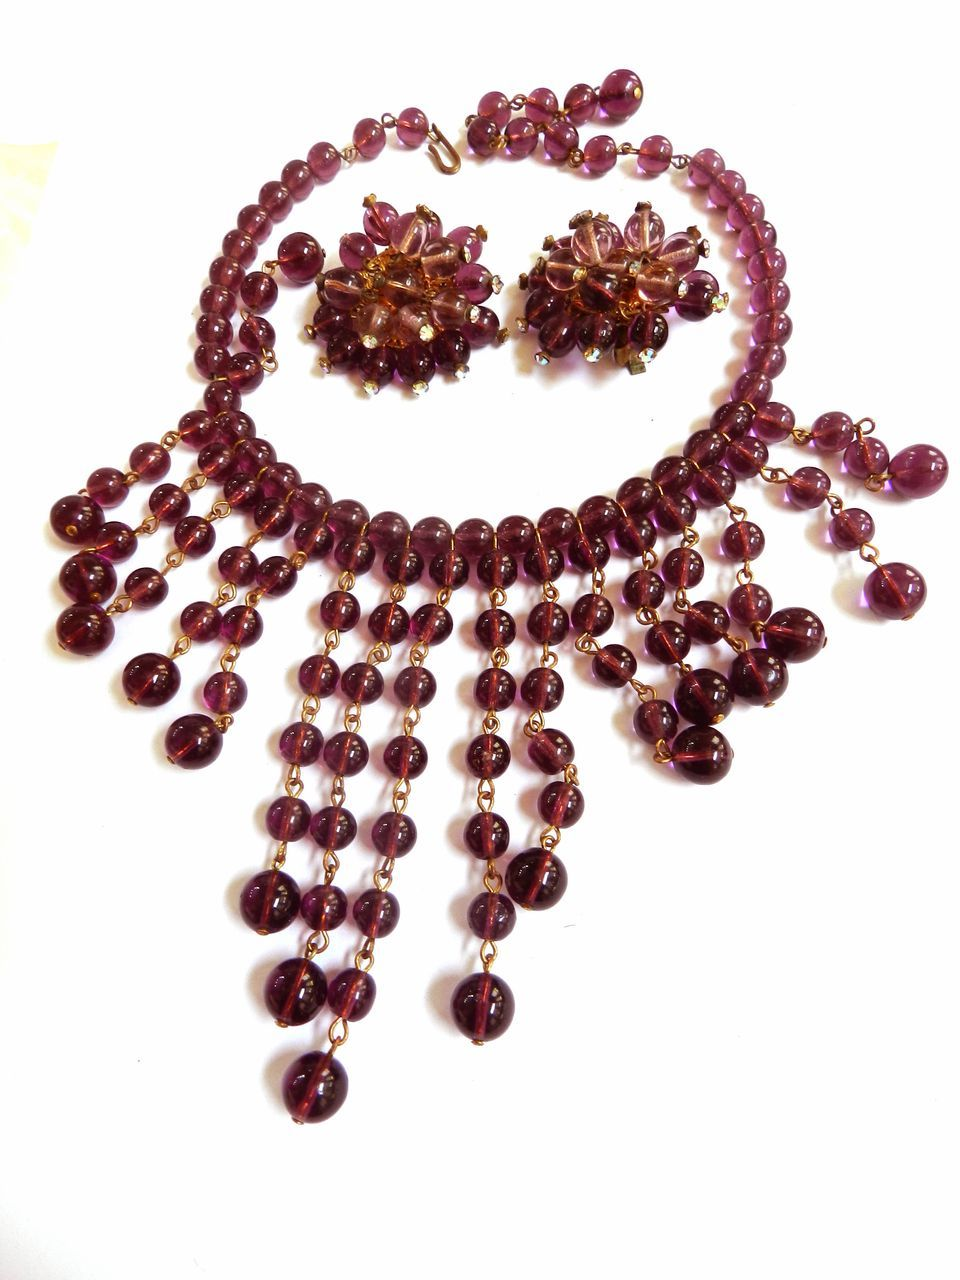 Show Stopper Huge Glass Amethyst Egyptian Revival Necklace and Earirngs